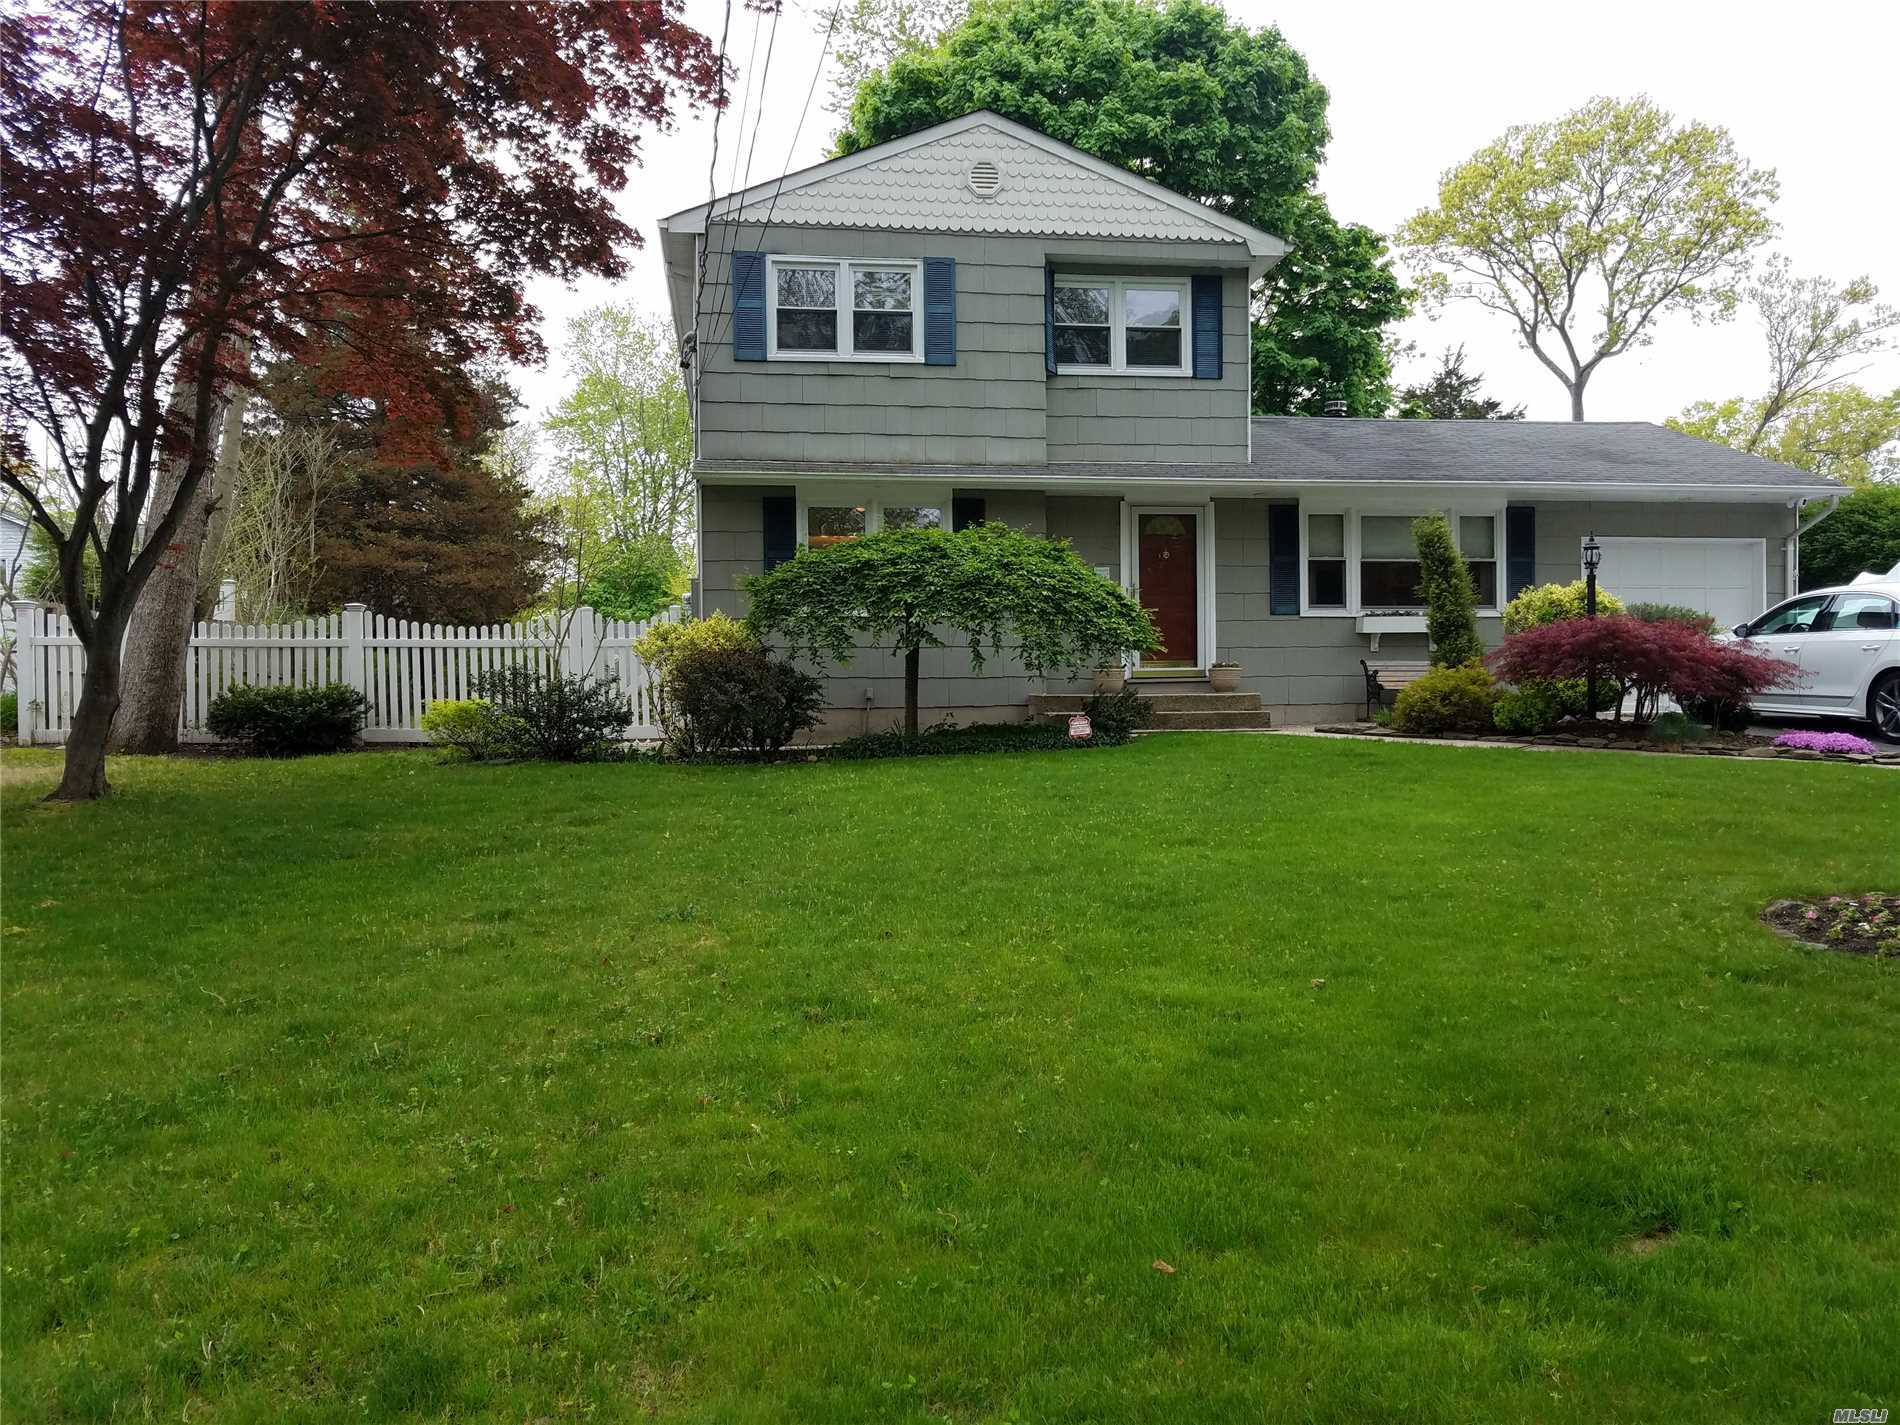 Beautiful Mint Condition Center Hall Colonial With Eat In Kitchen And Formal Dining Room. Gorgeous Den With Fireplace. Perfect For Entertaining. Sprinkler And Alarm System. Close To Transportation And Mall. Near Lake Grove Border. A Must See.